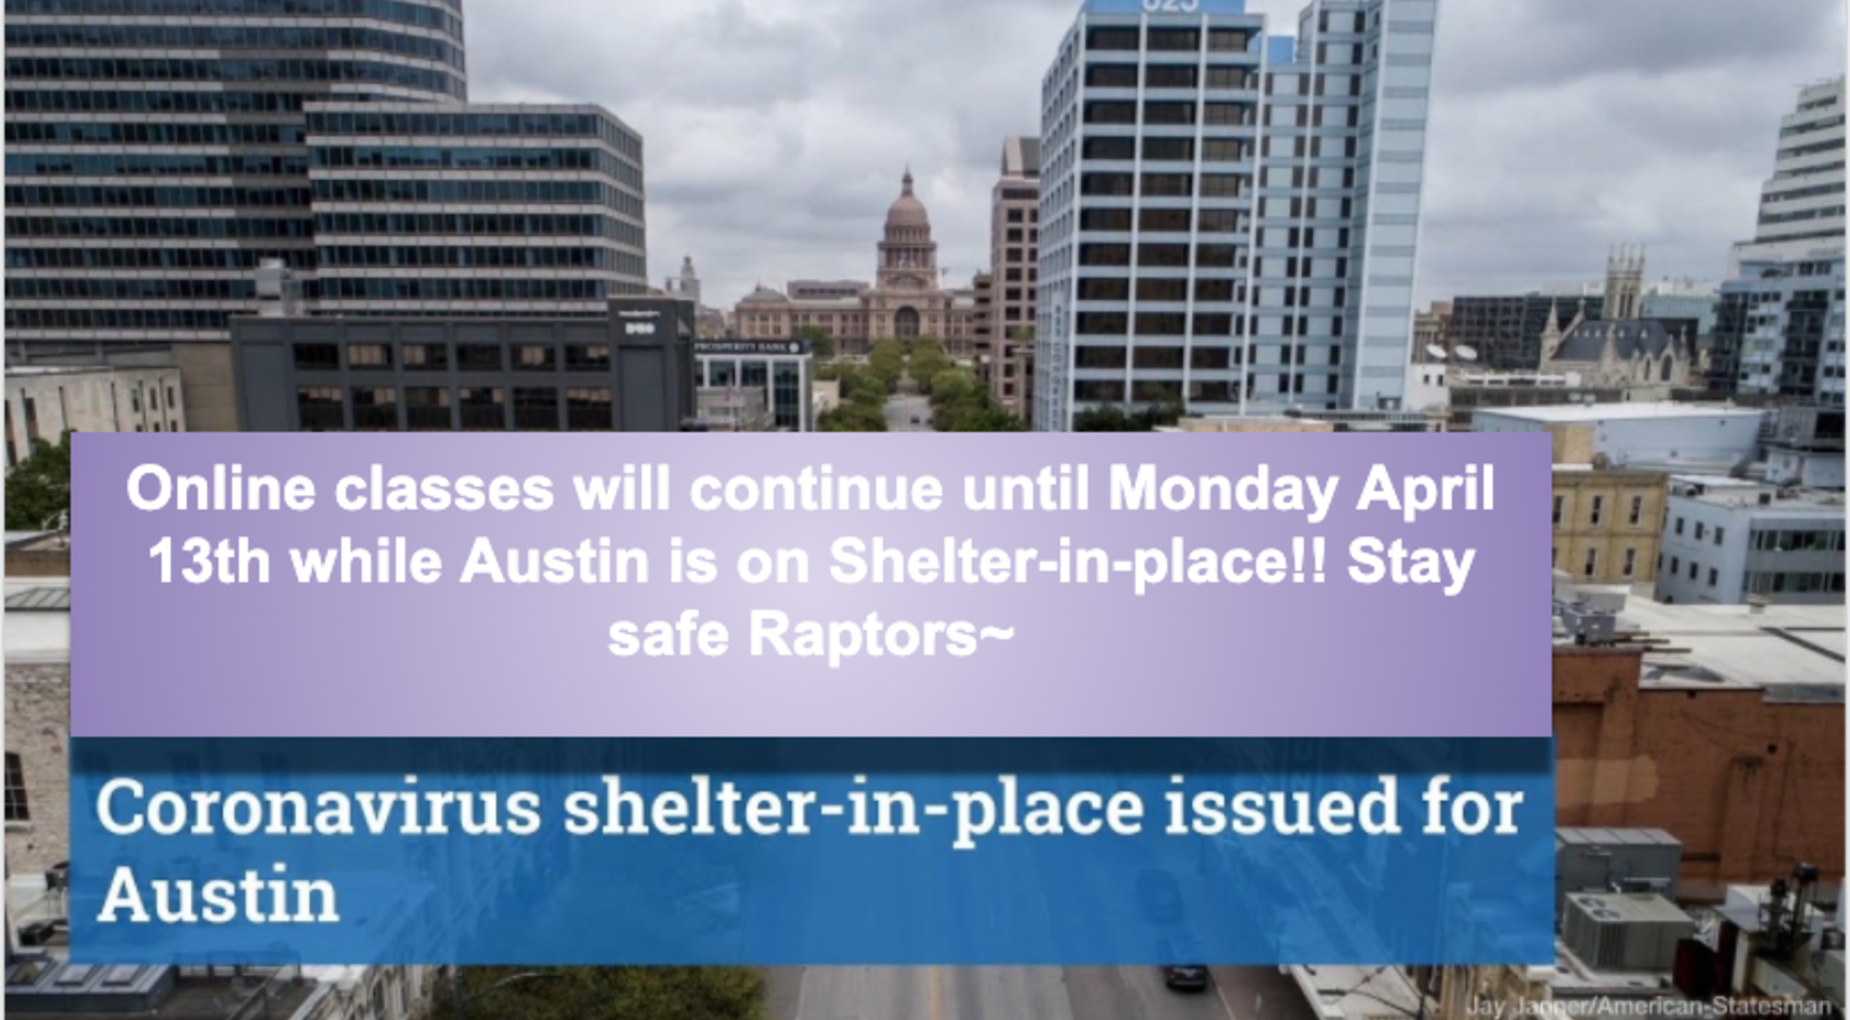 Online Classes continue until April 13th while Austin is on Shelter-in-place